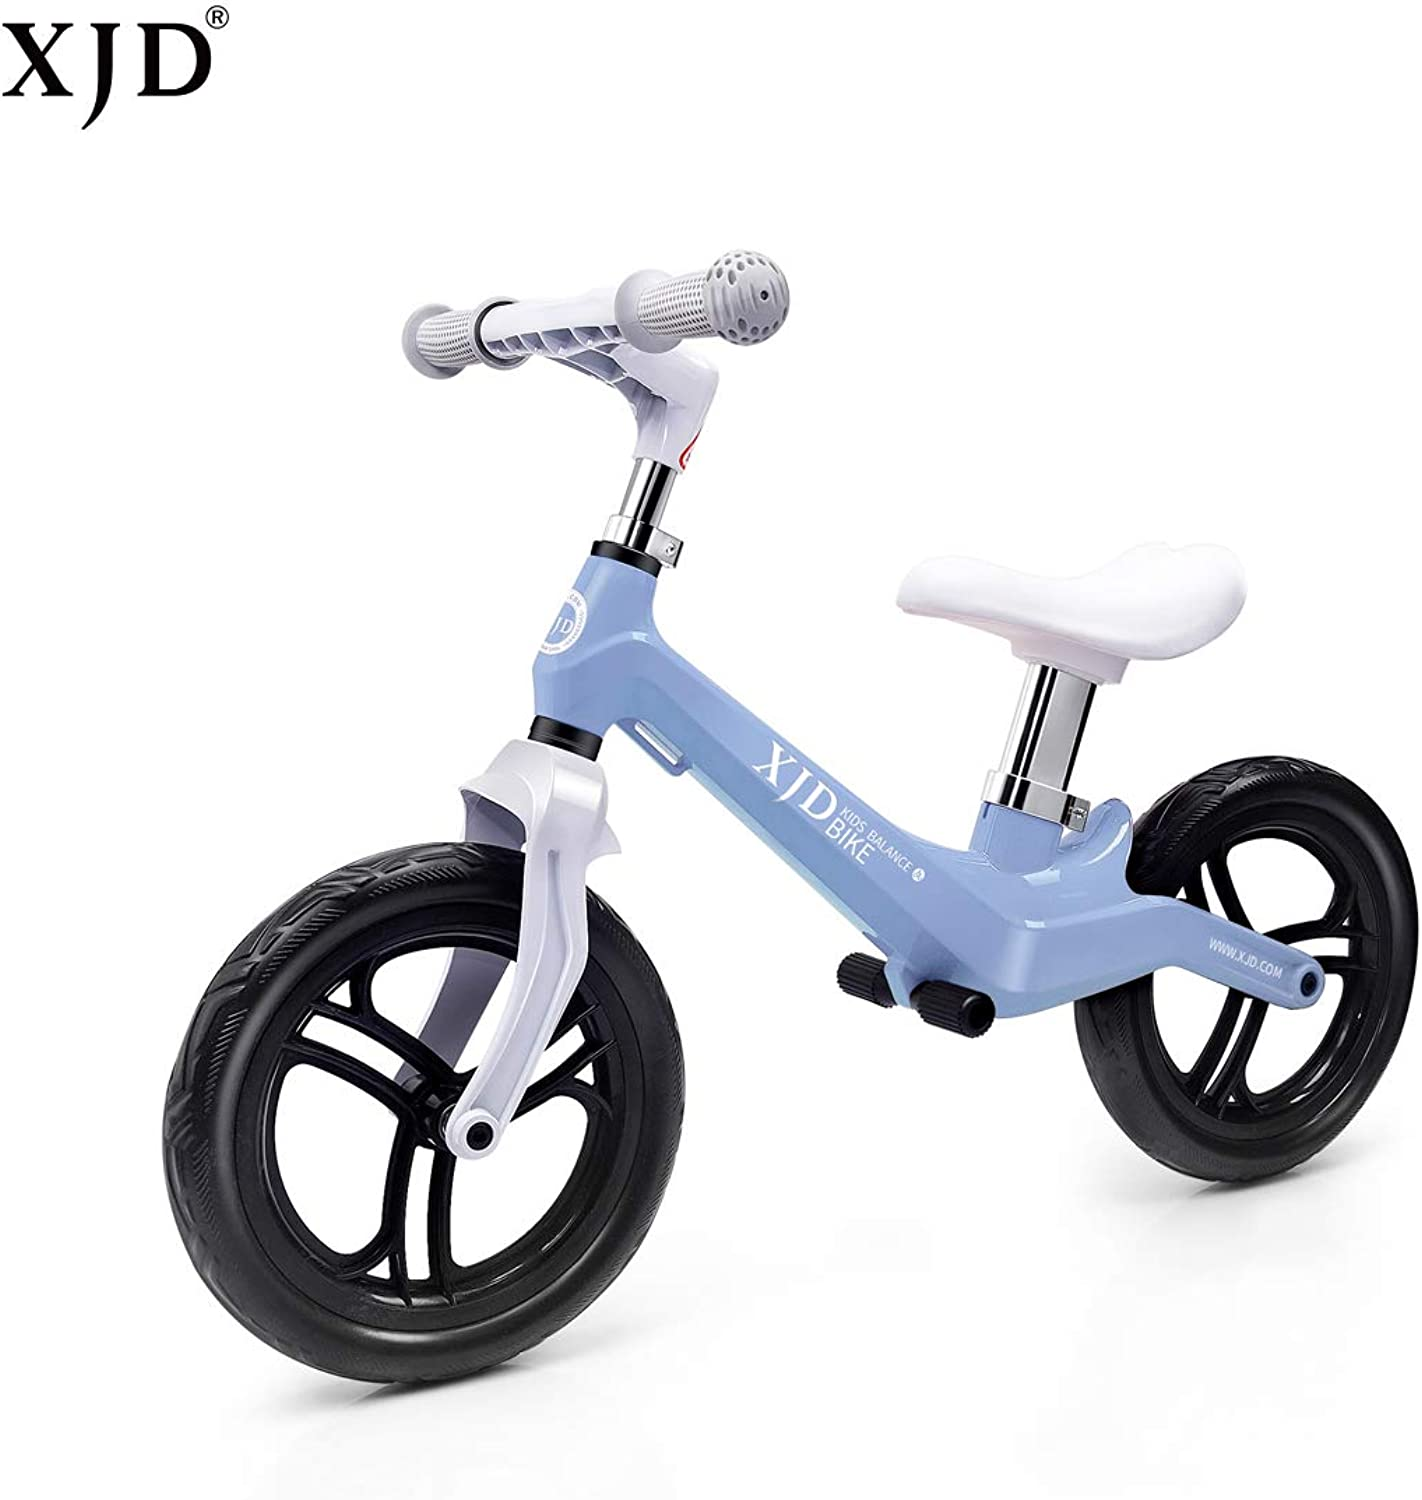 XJD Ultralight Balance Bike (4.8 lbs) for Ages 1.5 to 5 Years Magnesium Best Sport Push Bicycle for 2, 3, 4 Year Old Boys & Girls Toddlers Kids Skip Tricycles on The Lightest First Bike